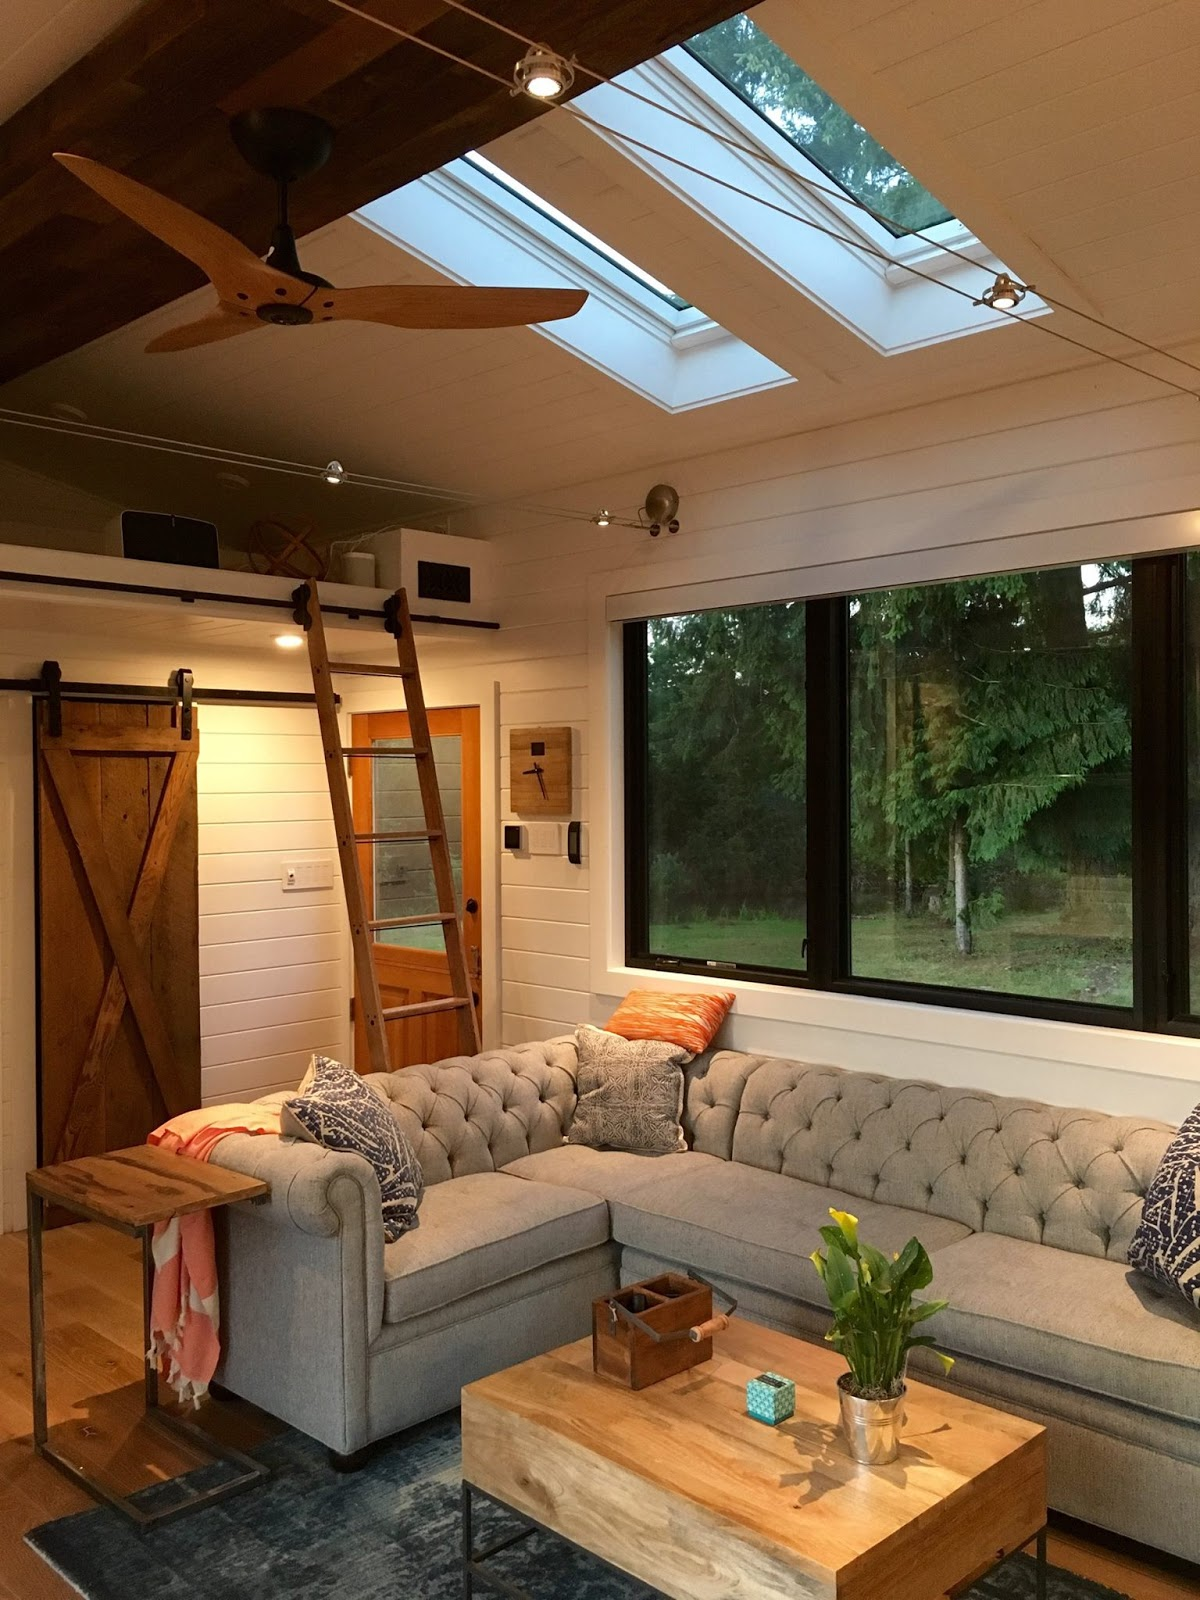 The hawaii house by tiny heirloom tiny house town - Interior designs for small homes ...